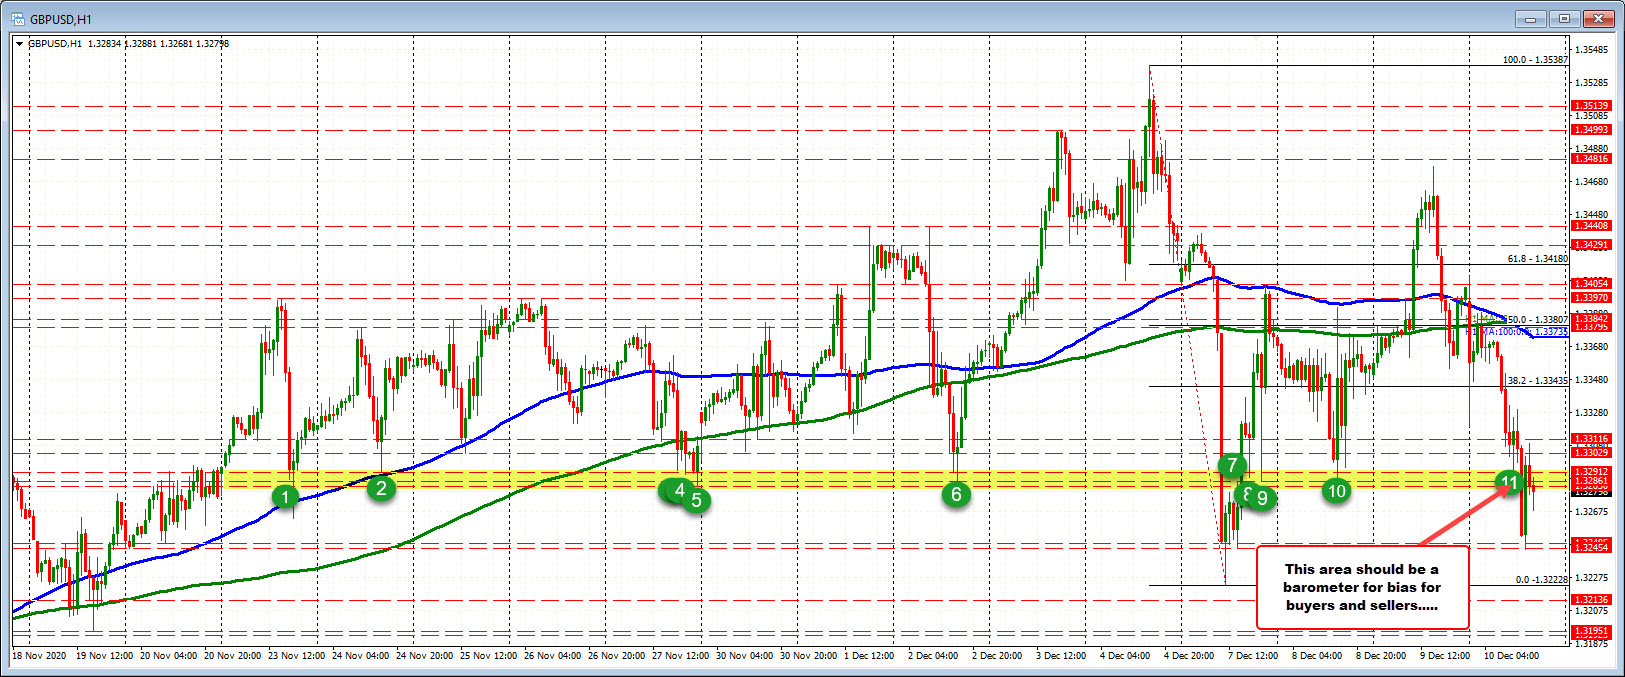 Photo of Watch the 1.3283-1.32912 area in the GBPUSD for any evidence of bias